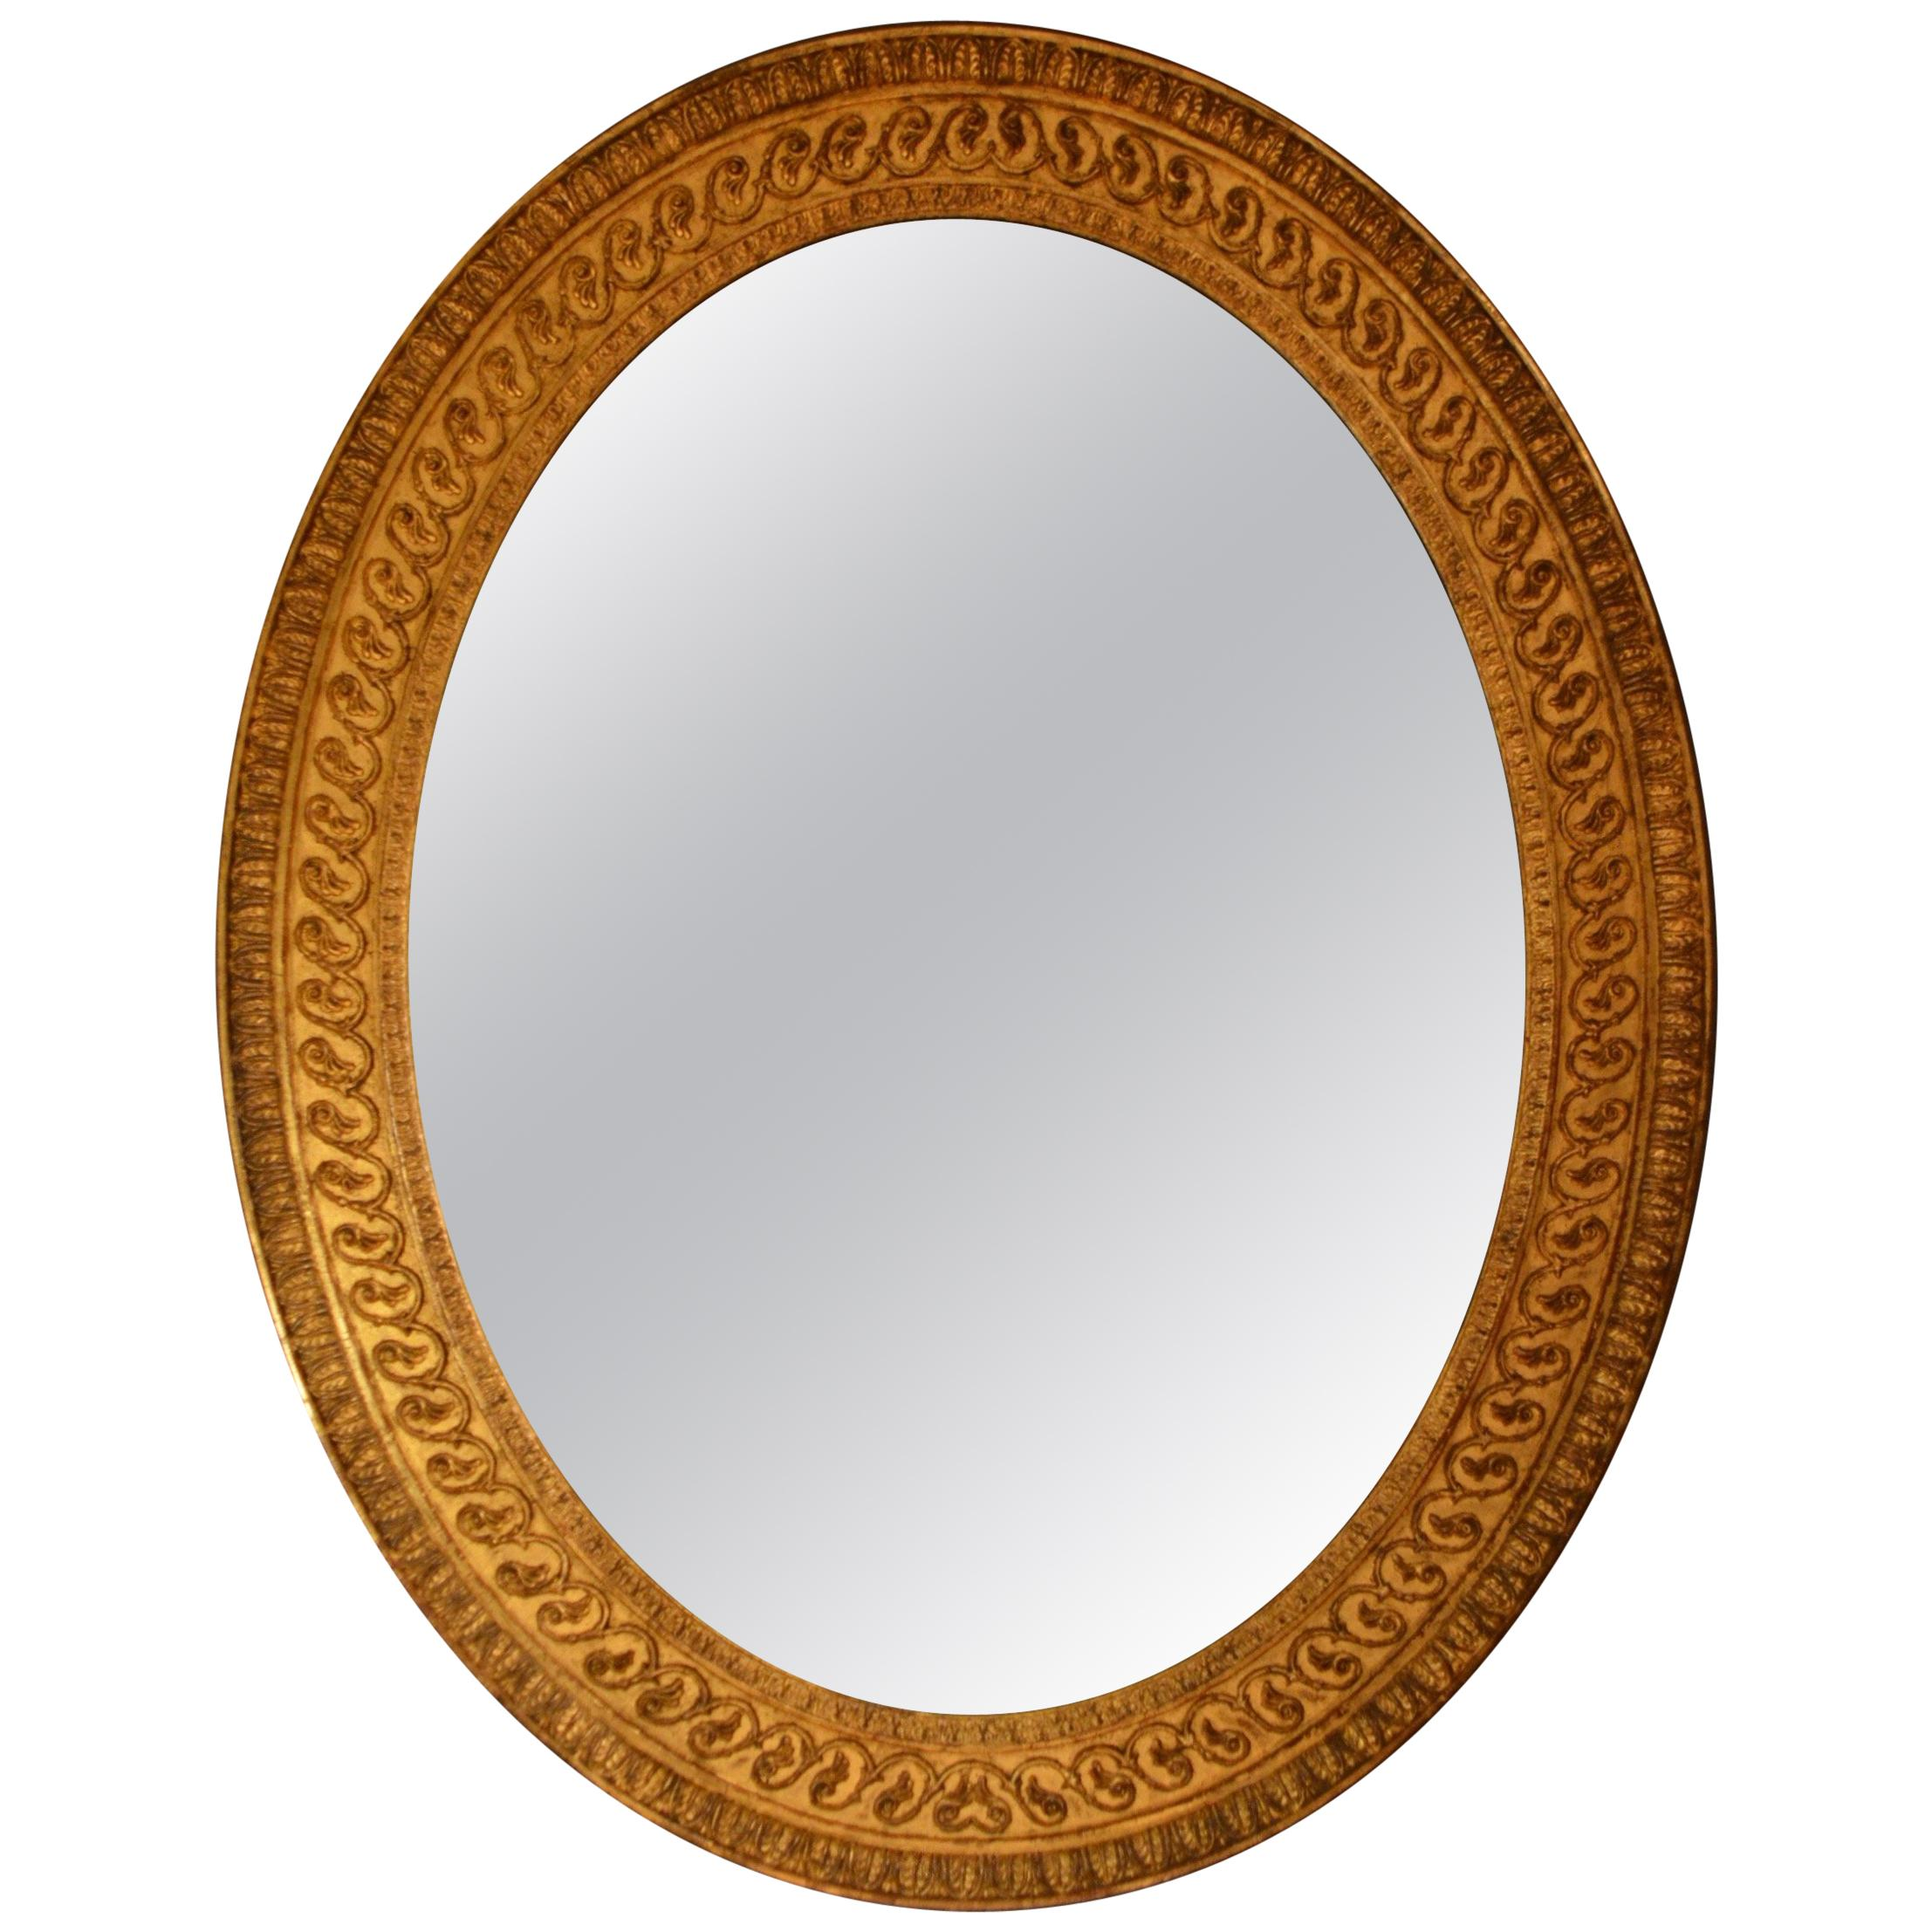 Antique And Vintage Mirrors 15 602 For Sale At 1stdibs